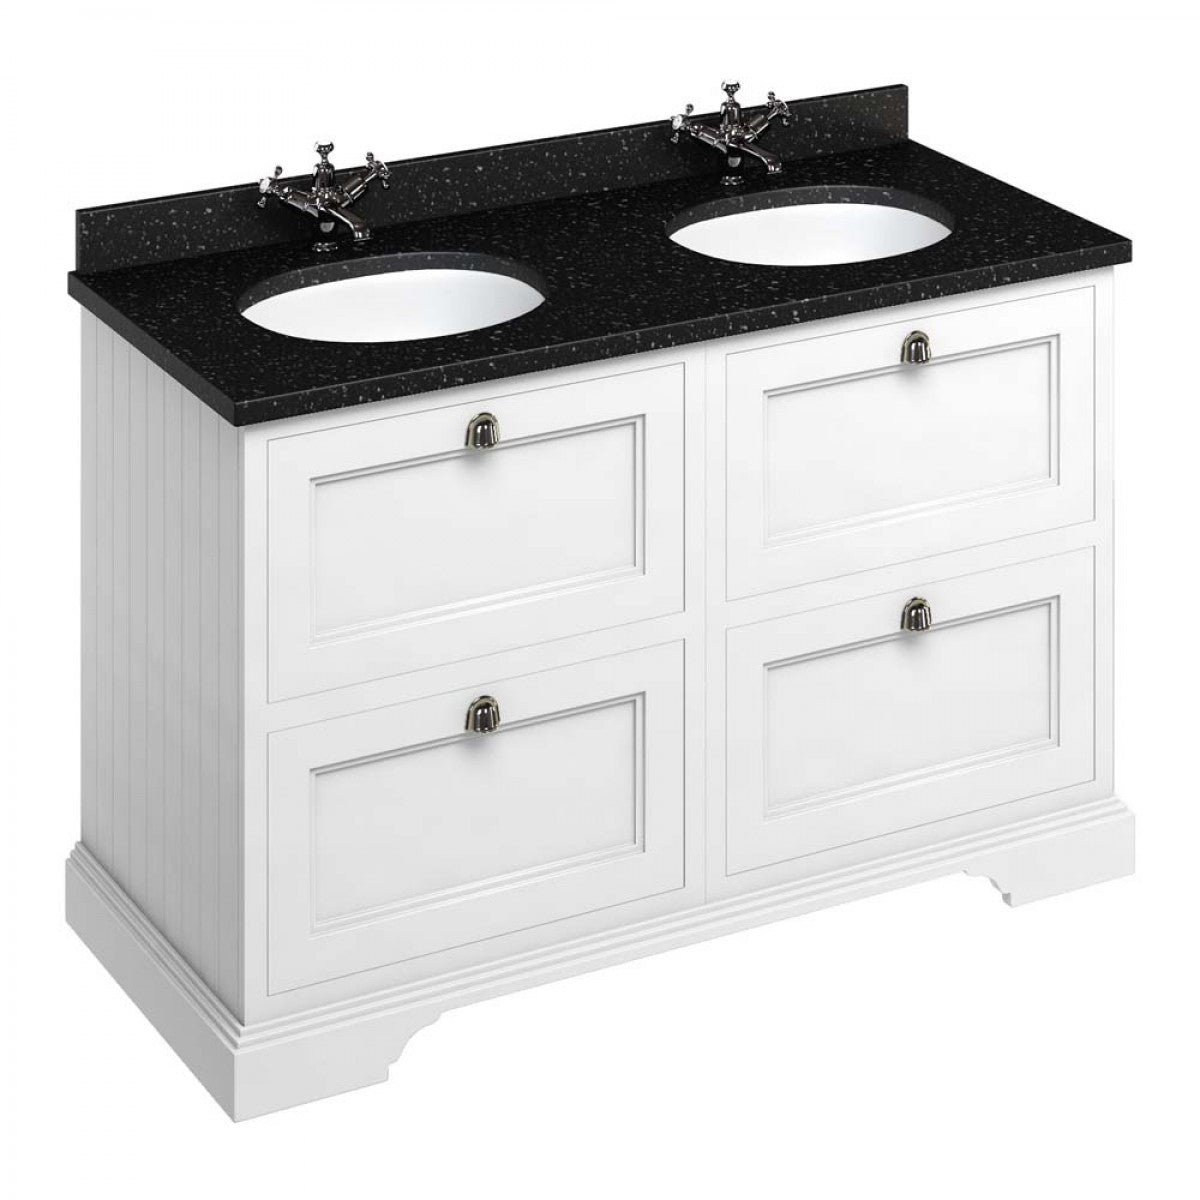 BURLINGTON 130 DRAWER VANITY UNIT WITH MINERVA WORKTOP & DOUBLE BASIN - 1296MM